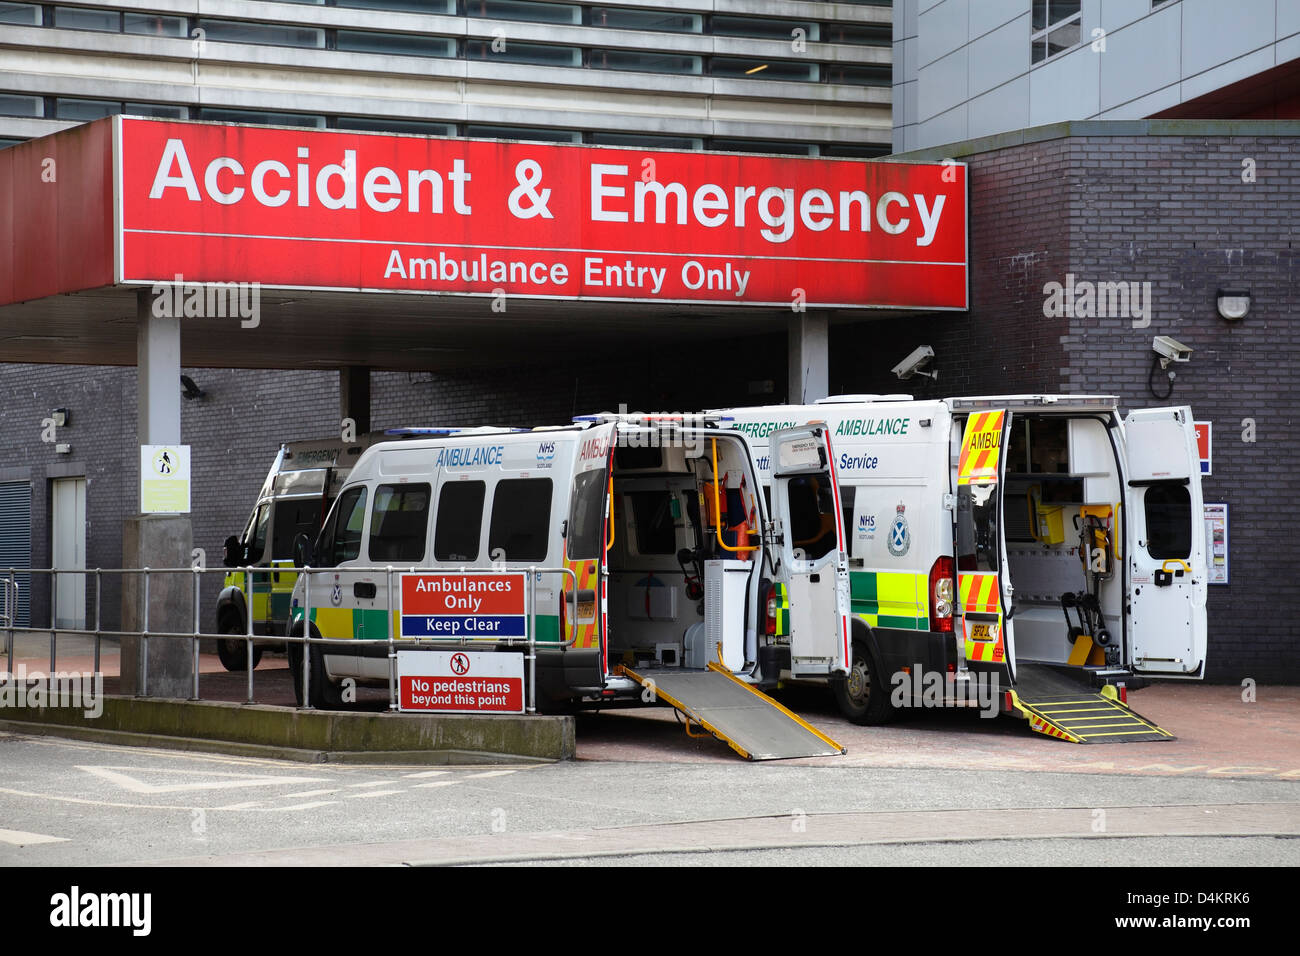 Accident and Emergency entrance, ambulance entry only, Glasgow Royal Infirmary, Scotland, UK - Stock Image